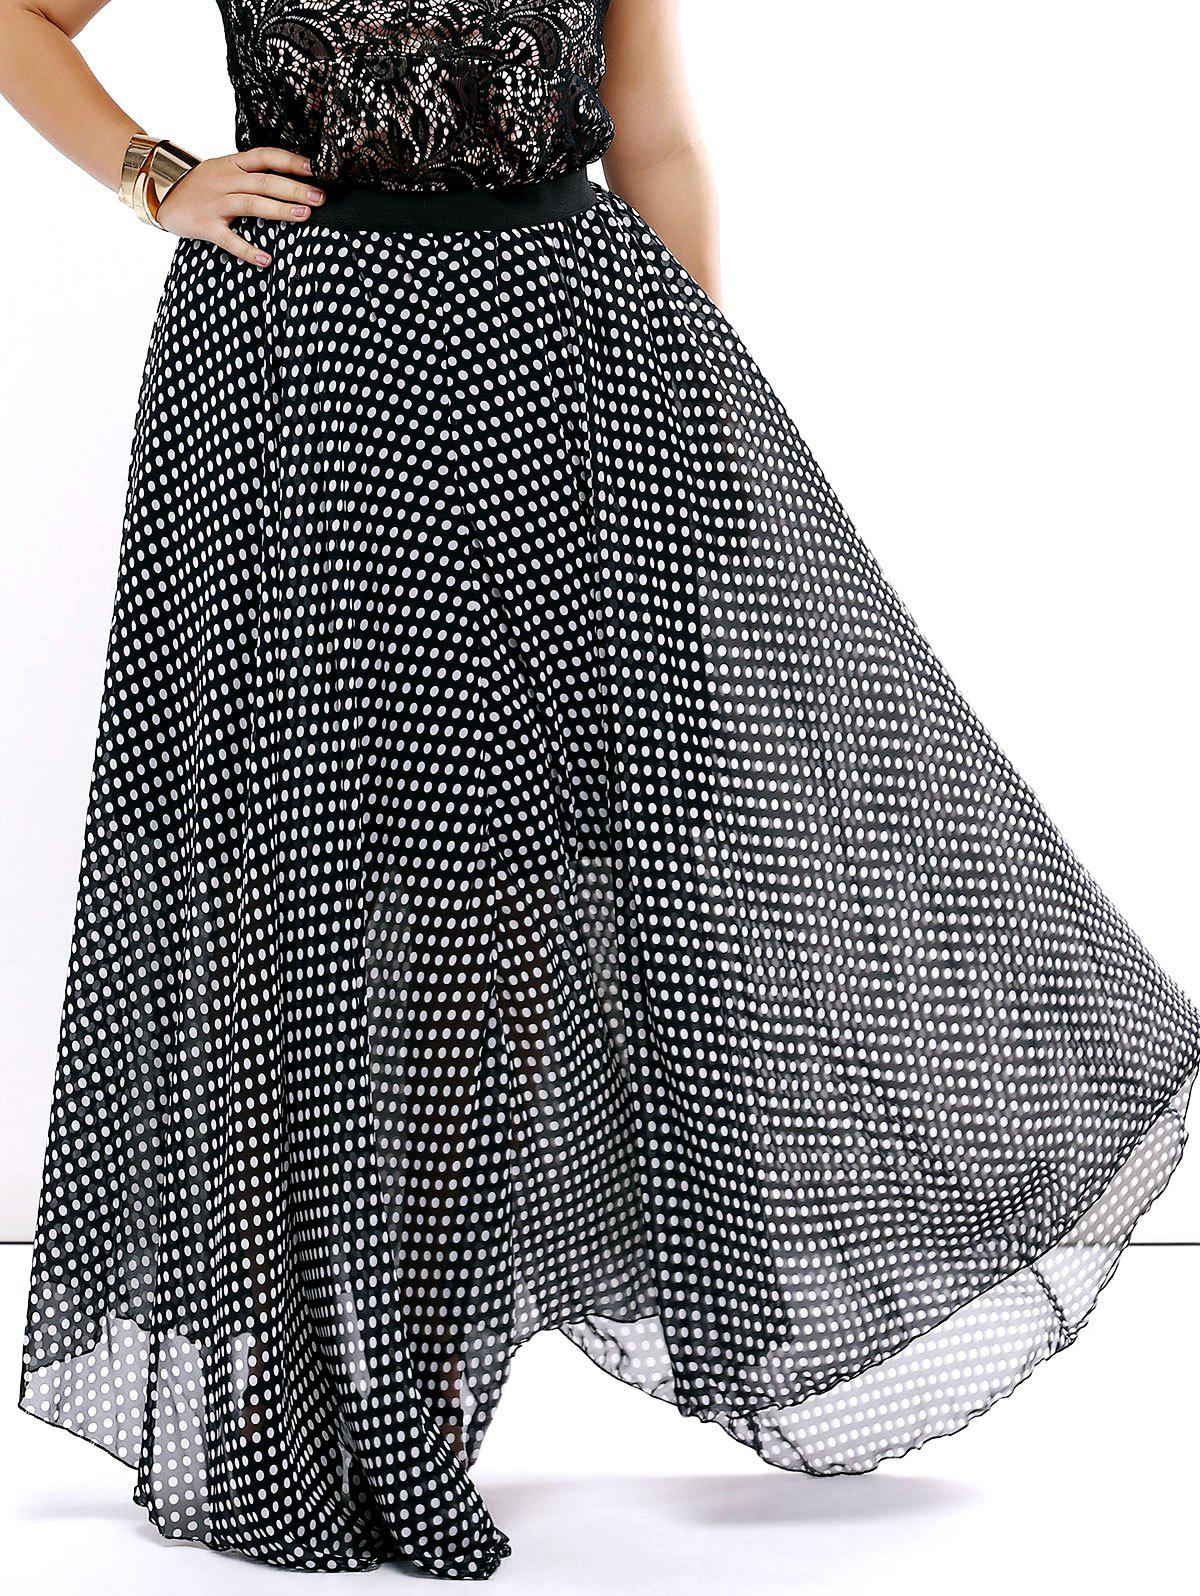 Flowing Polka Dot Chiffon Skirt - BLACK 2XL